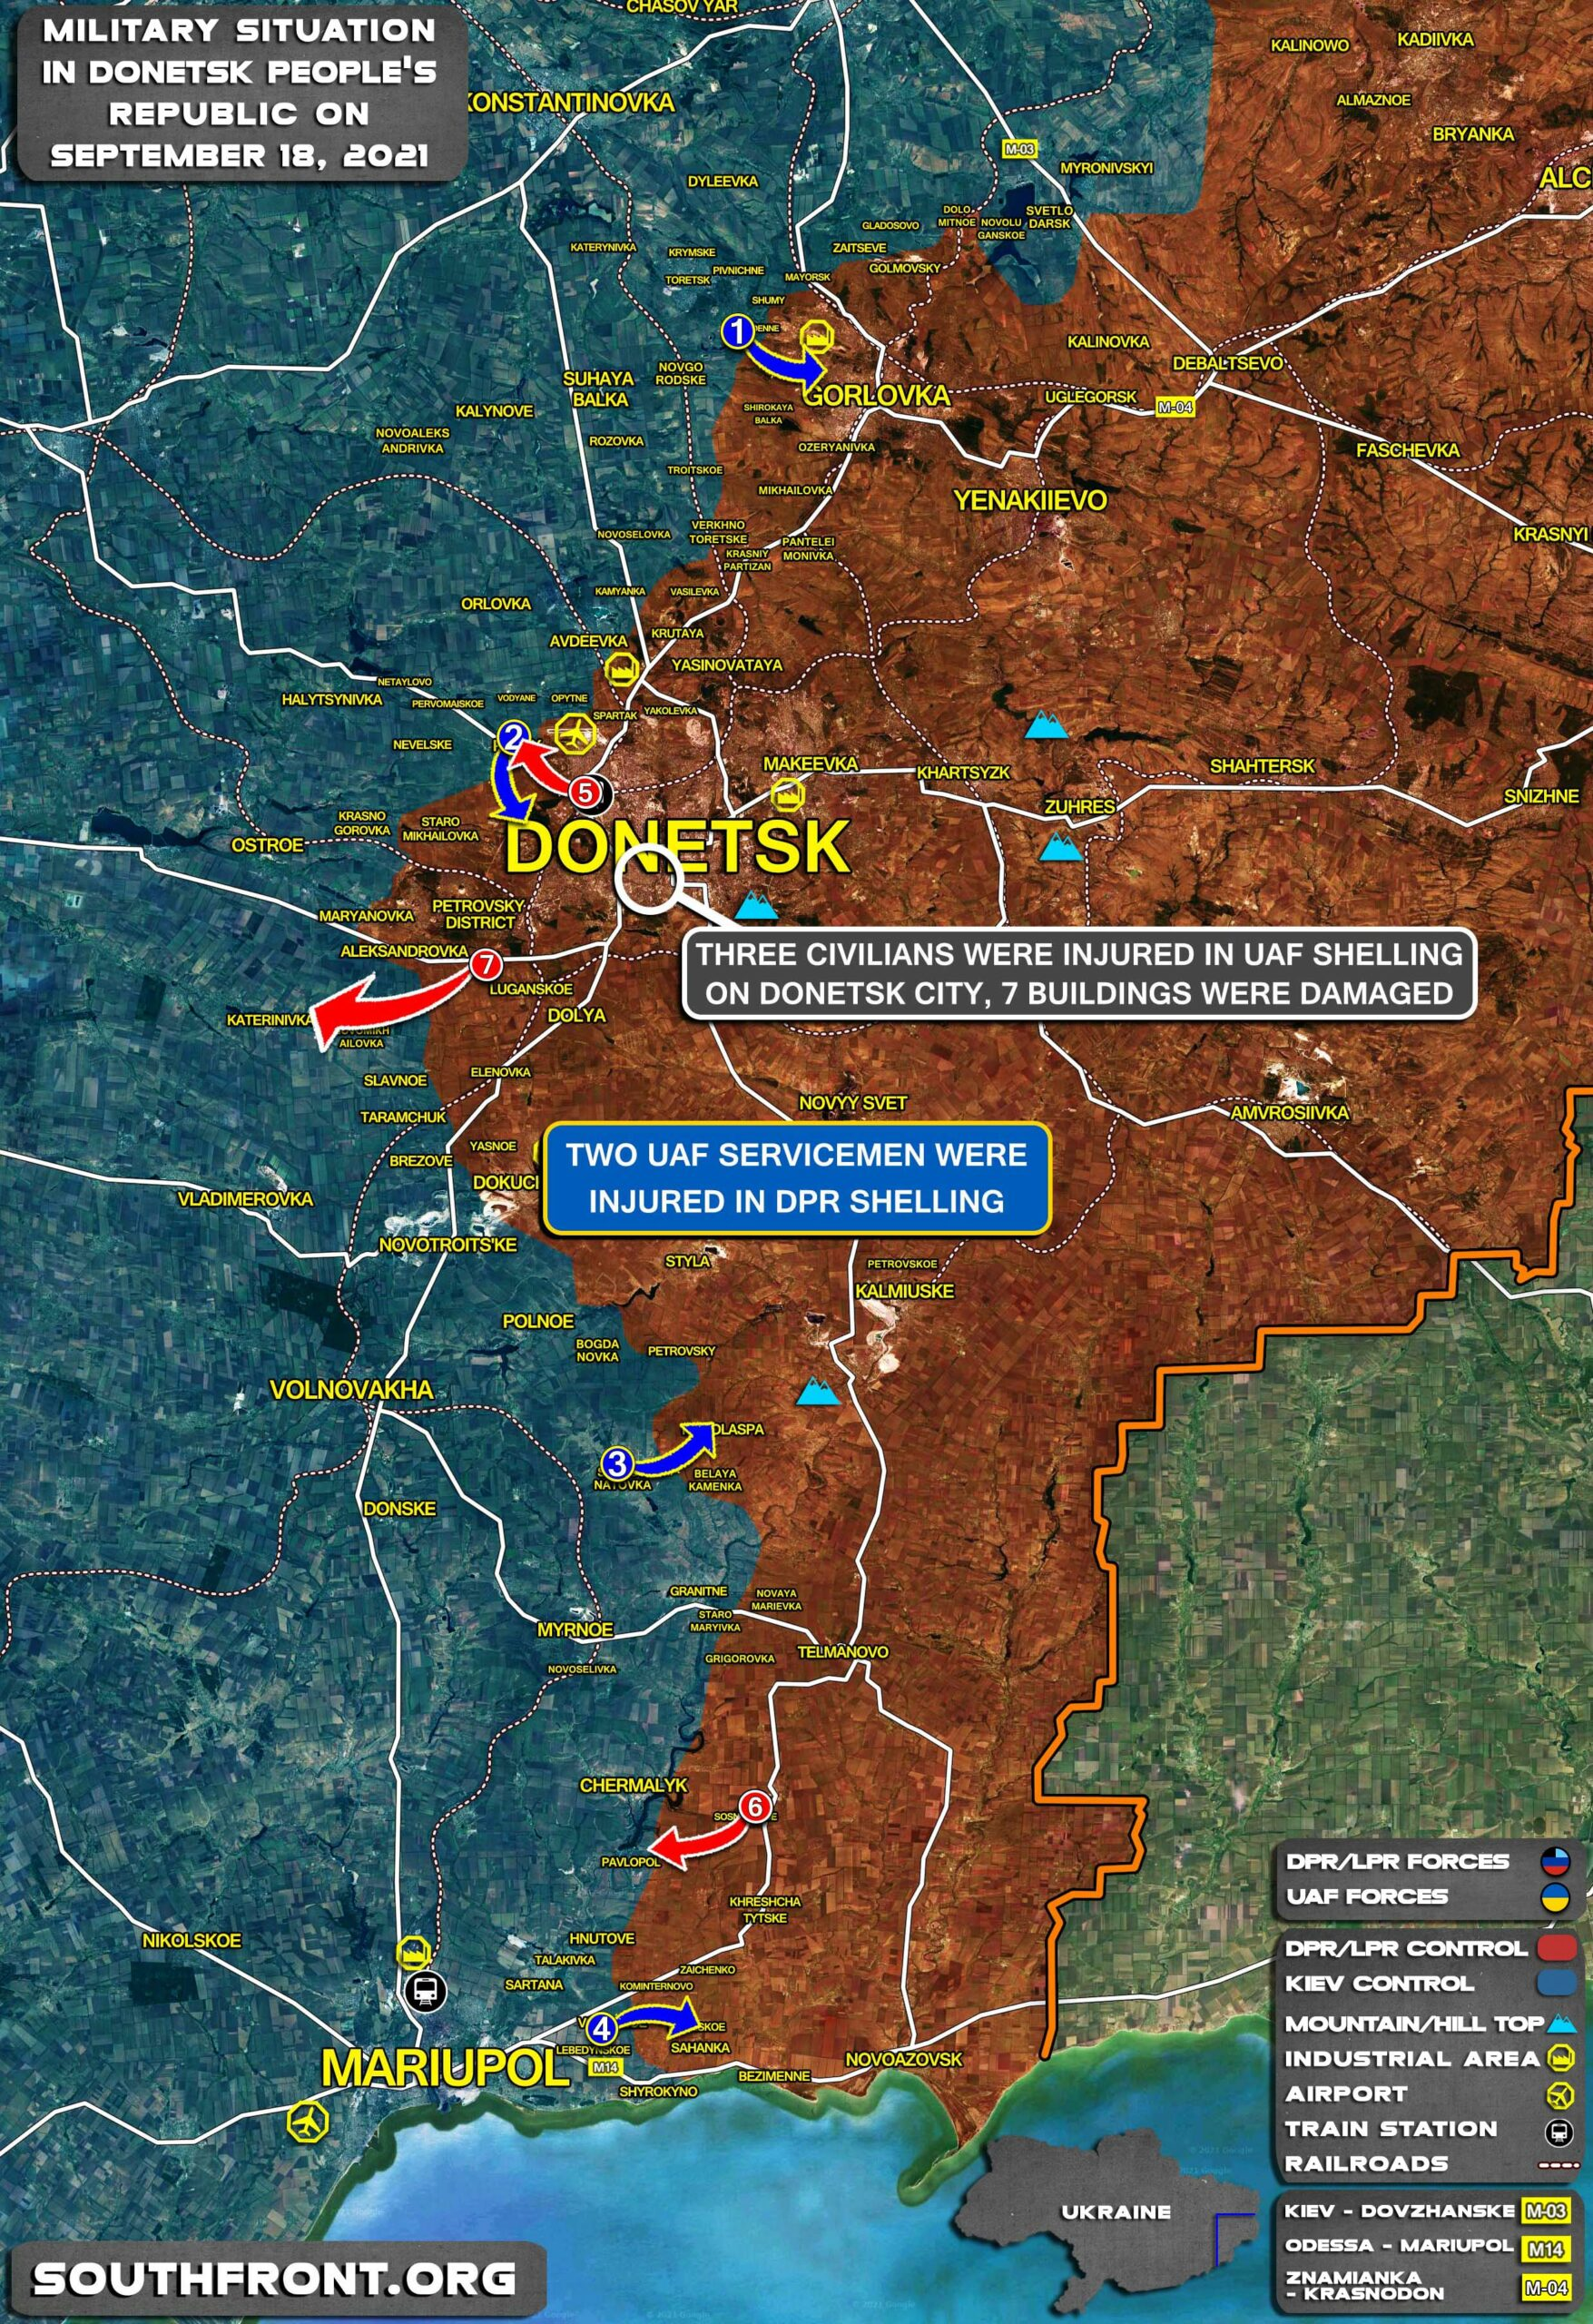 Military Situation In Donetsk People's Republic On September 18, 2021 (Map Update)